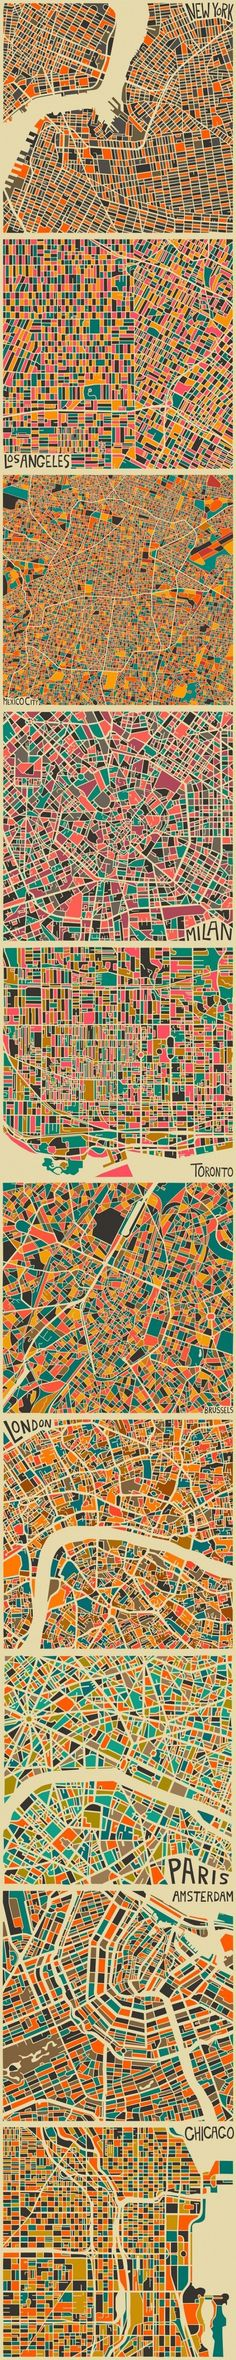 Expressive maps famous cities of the world in the form of mosaics